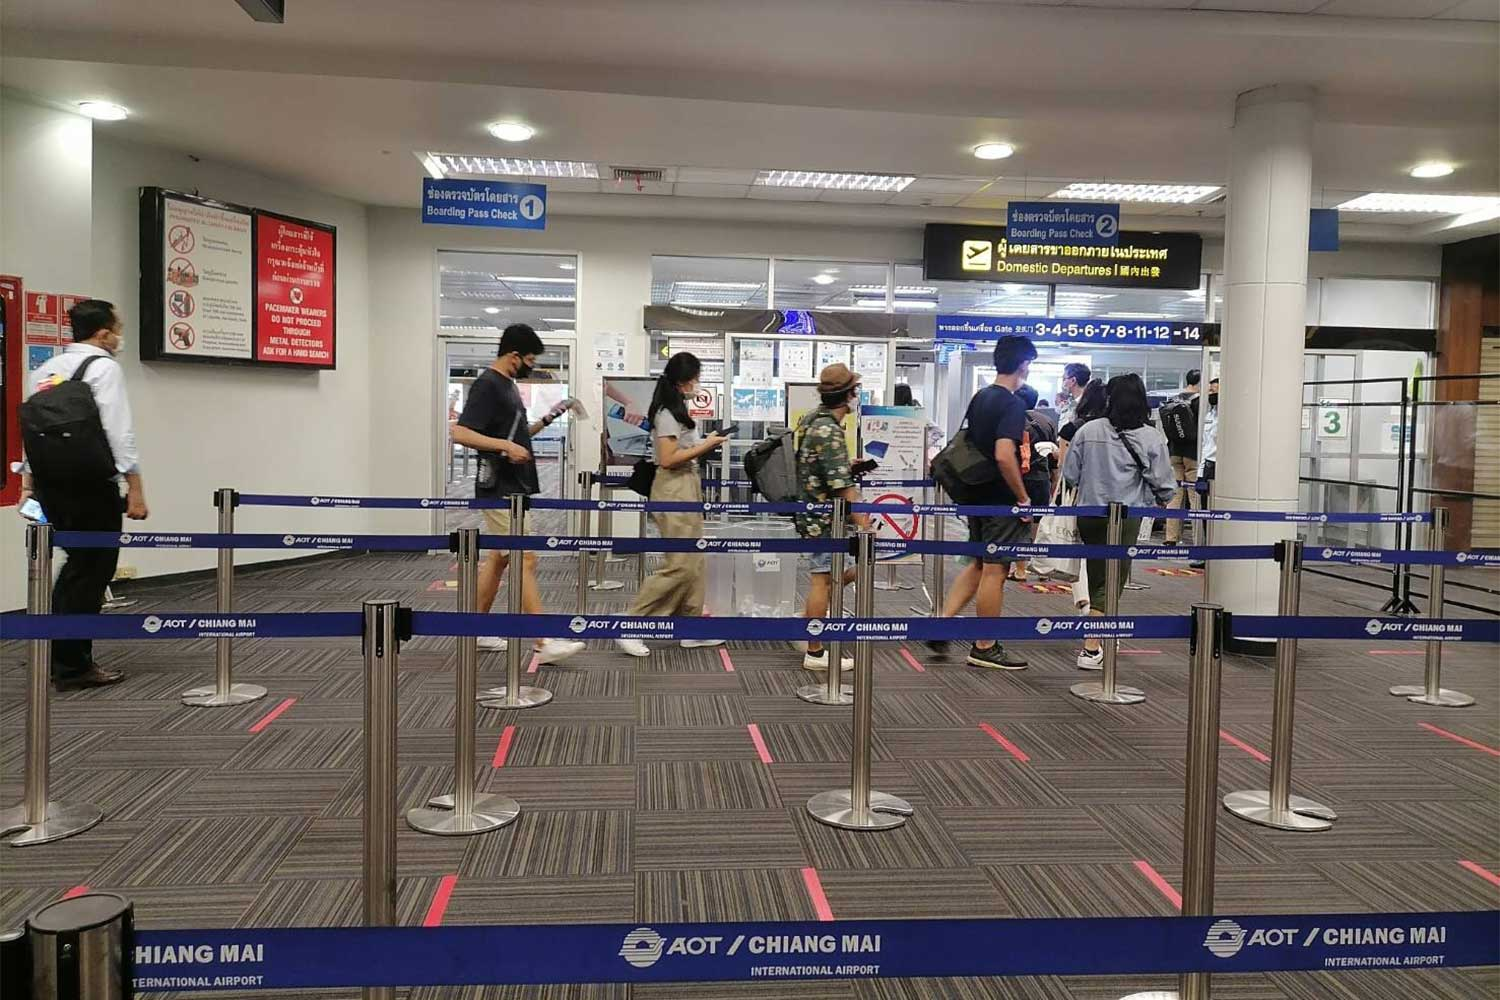 Passengers arrive at Chiang Mai airport on Thursday, where the number of domestic flights has almost doubled. (Photo: Phanumet Tanraksa)